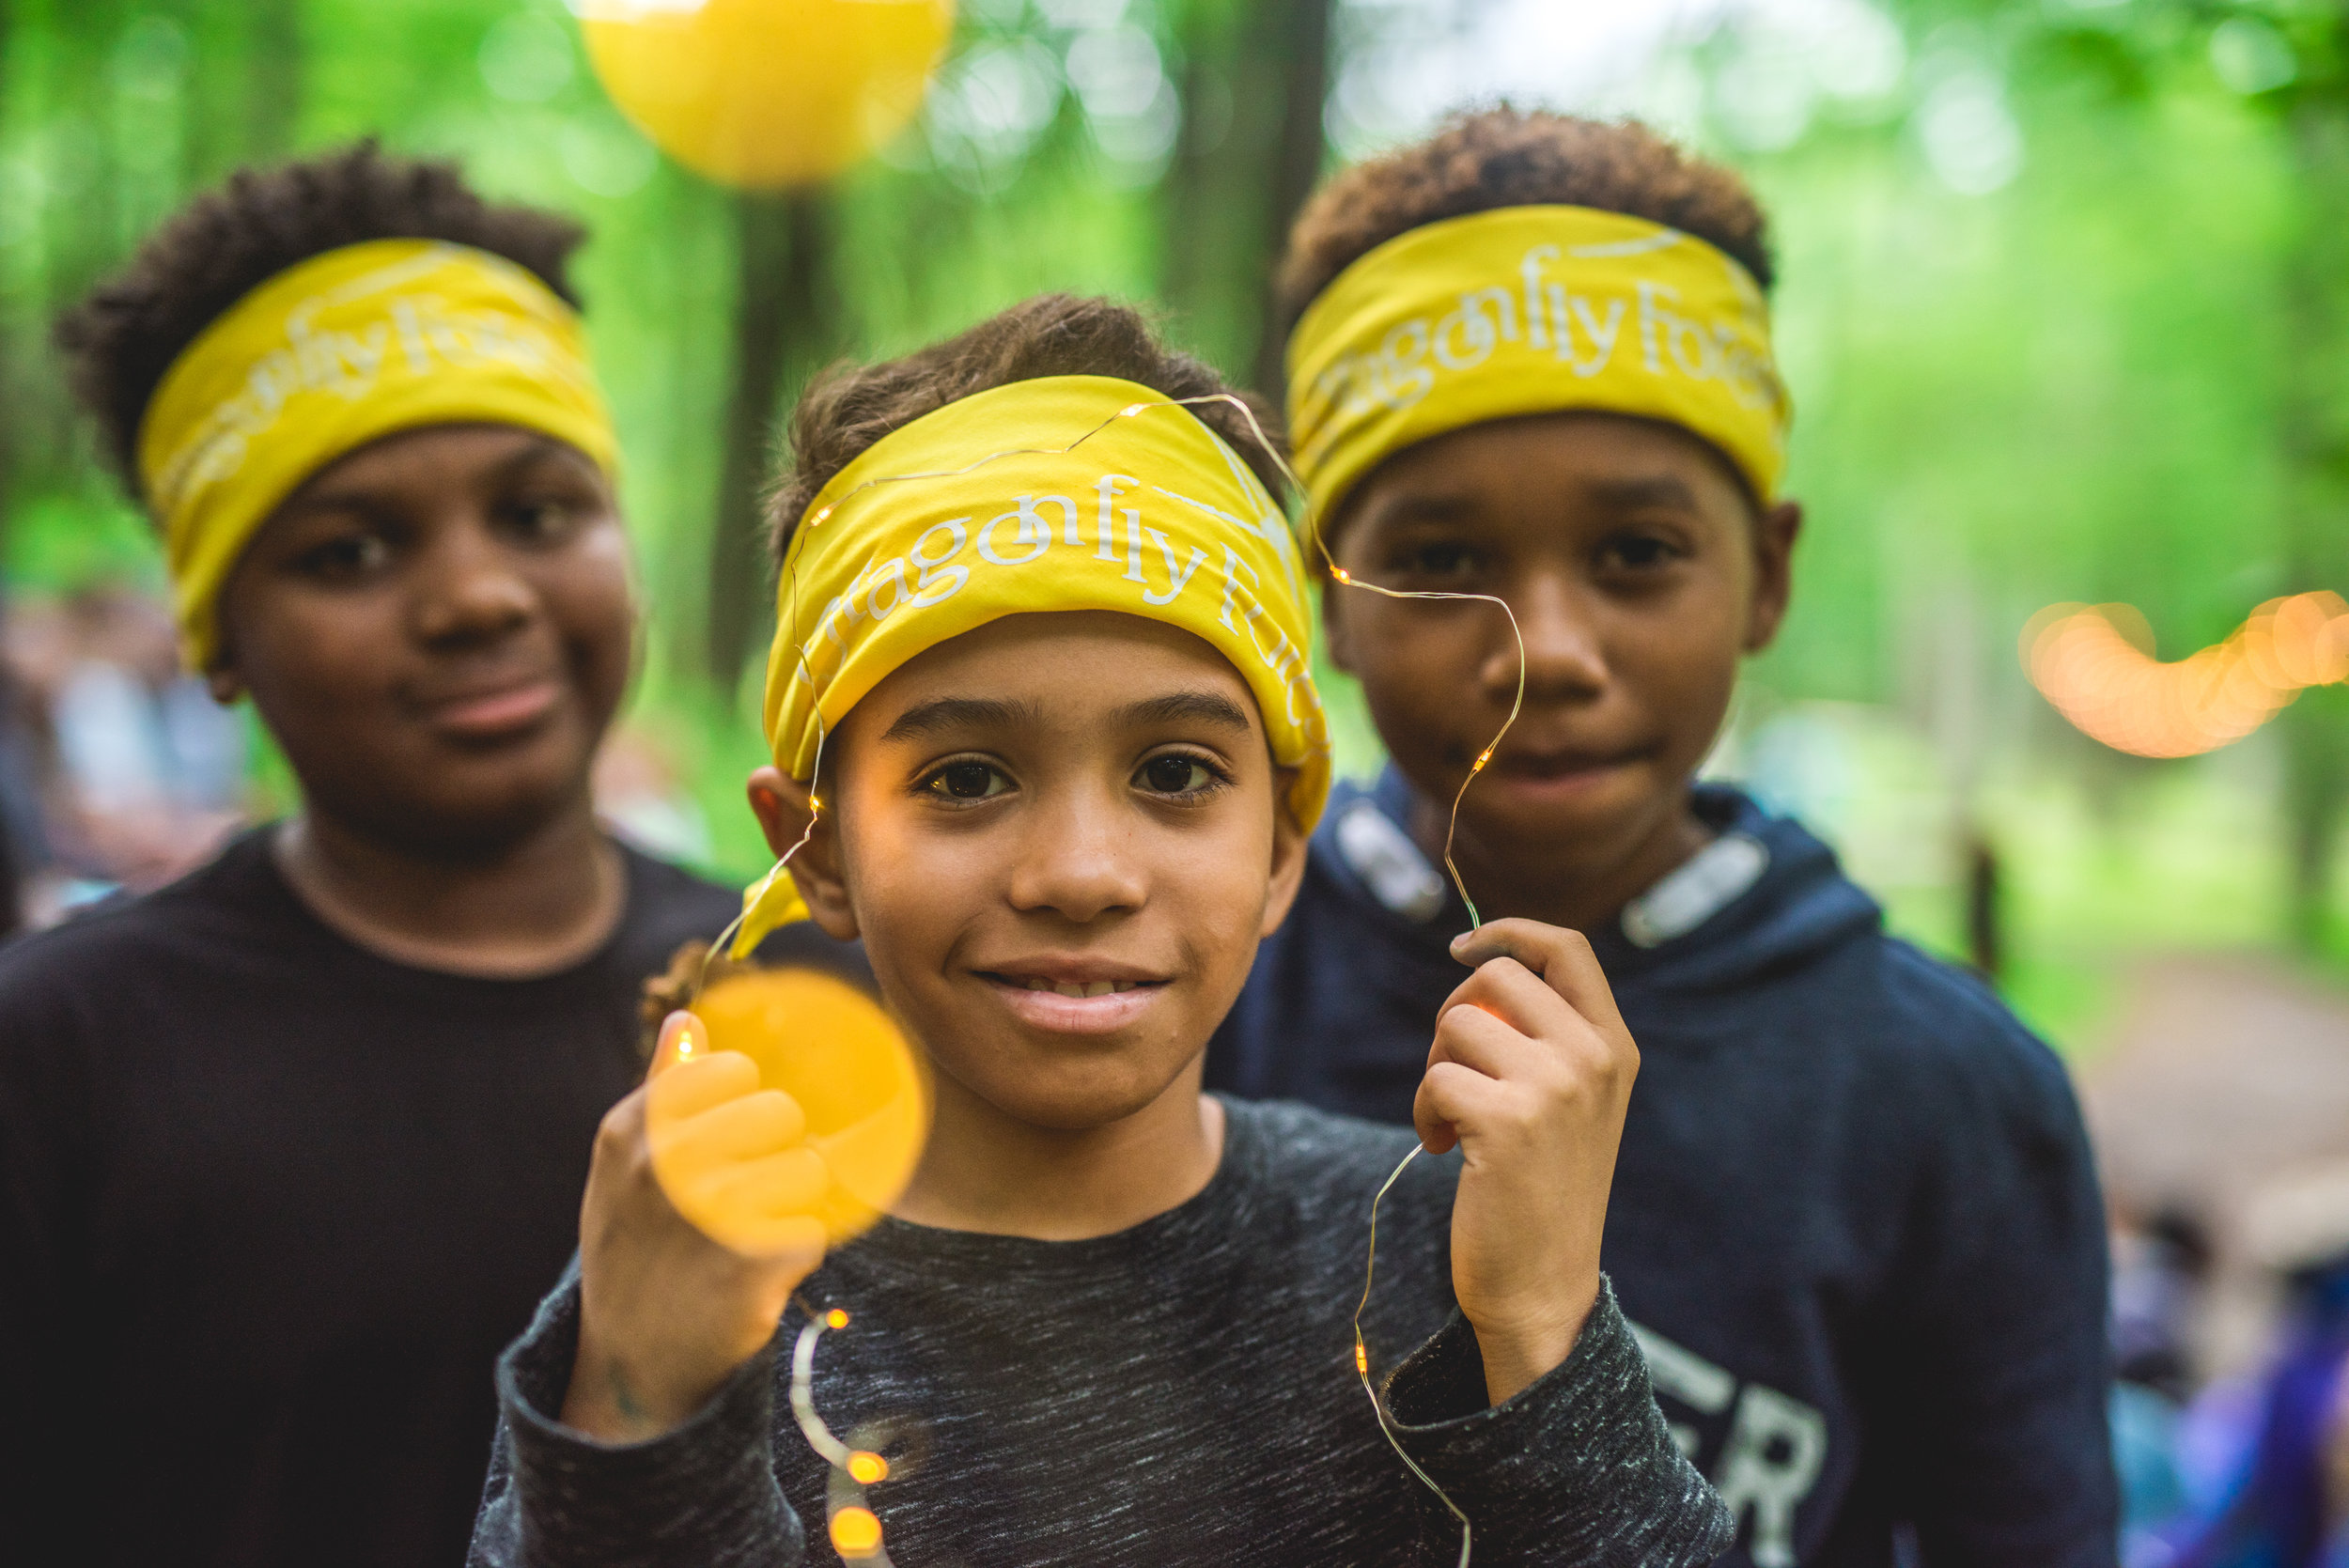 External scholarships - Dragonfly Forest is dedicated to making camp affordable for all of our families. To help to do this, we have compiled a list of external scholarships we found that could be available to our campers. Take a look at the list to see if any work for you! If there are any more funding opportunities you are aware of to help bring kids to camp, please let us know at dragonflyforest@philaymca.org